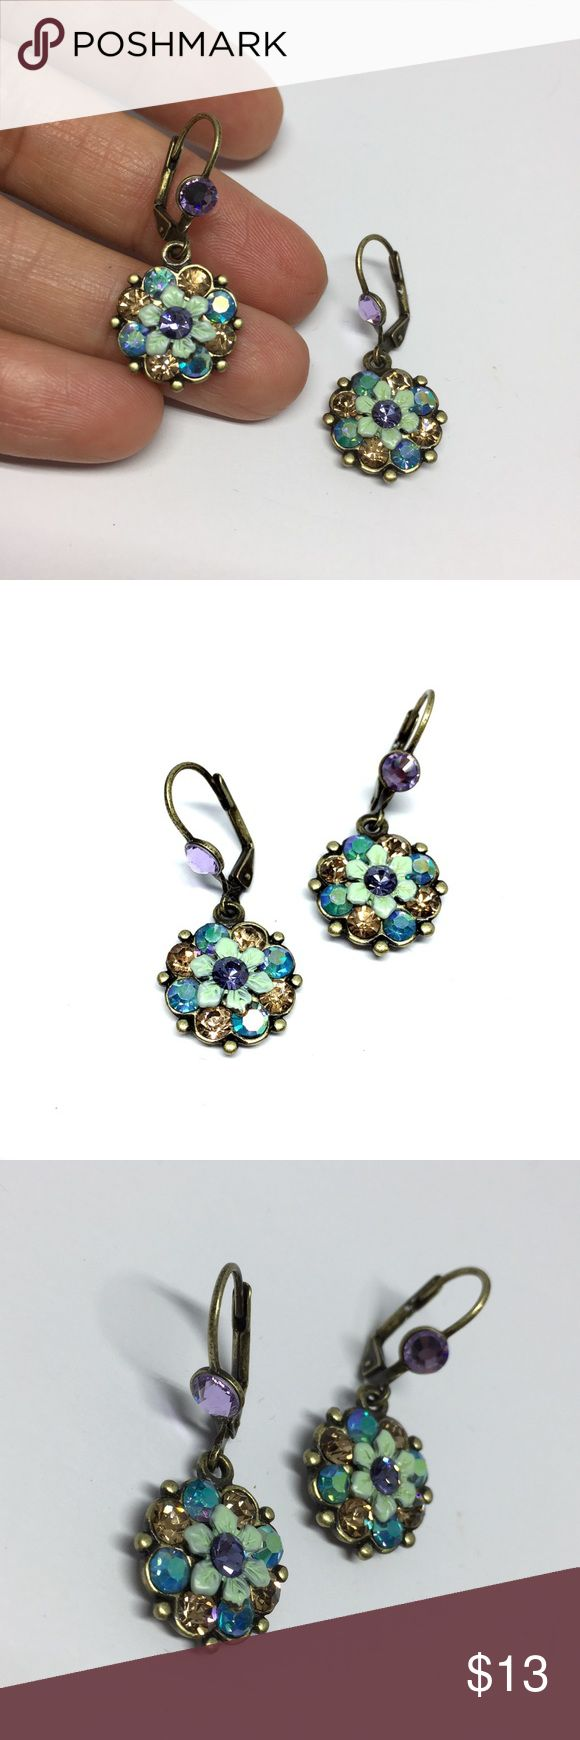 Colorful Vintage Look Flowers Drop Earring Add this beautiful Vintage look to your daily. Rhodium is a precious metal, a member of the PLATINUM family. Rhodium electroplating is used, especially on jewelry, to provide a surface that will resist scratches and tarnish. Rhodium plating is most often found on white gold. •Material: Metal, Tin alloy, anti allergic, lead and nickel compliant. •BRAND NEW WITH TAG•BUNDLE TO SAVE•SAME DAY OR NEXT DAY SHIPPING• 🔴I PRICES MY ITEMS REALLY LOW🔴 NO…